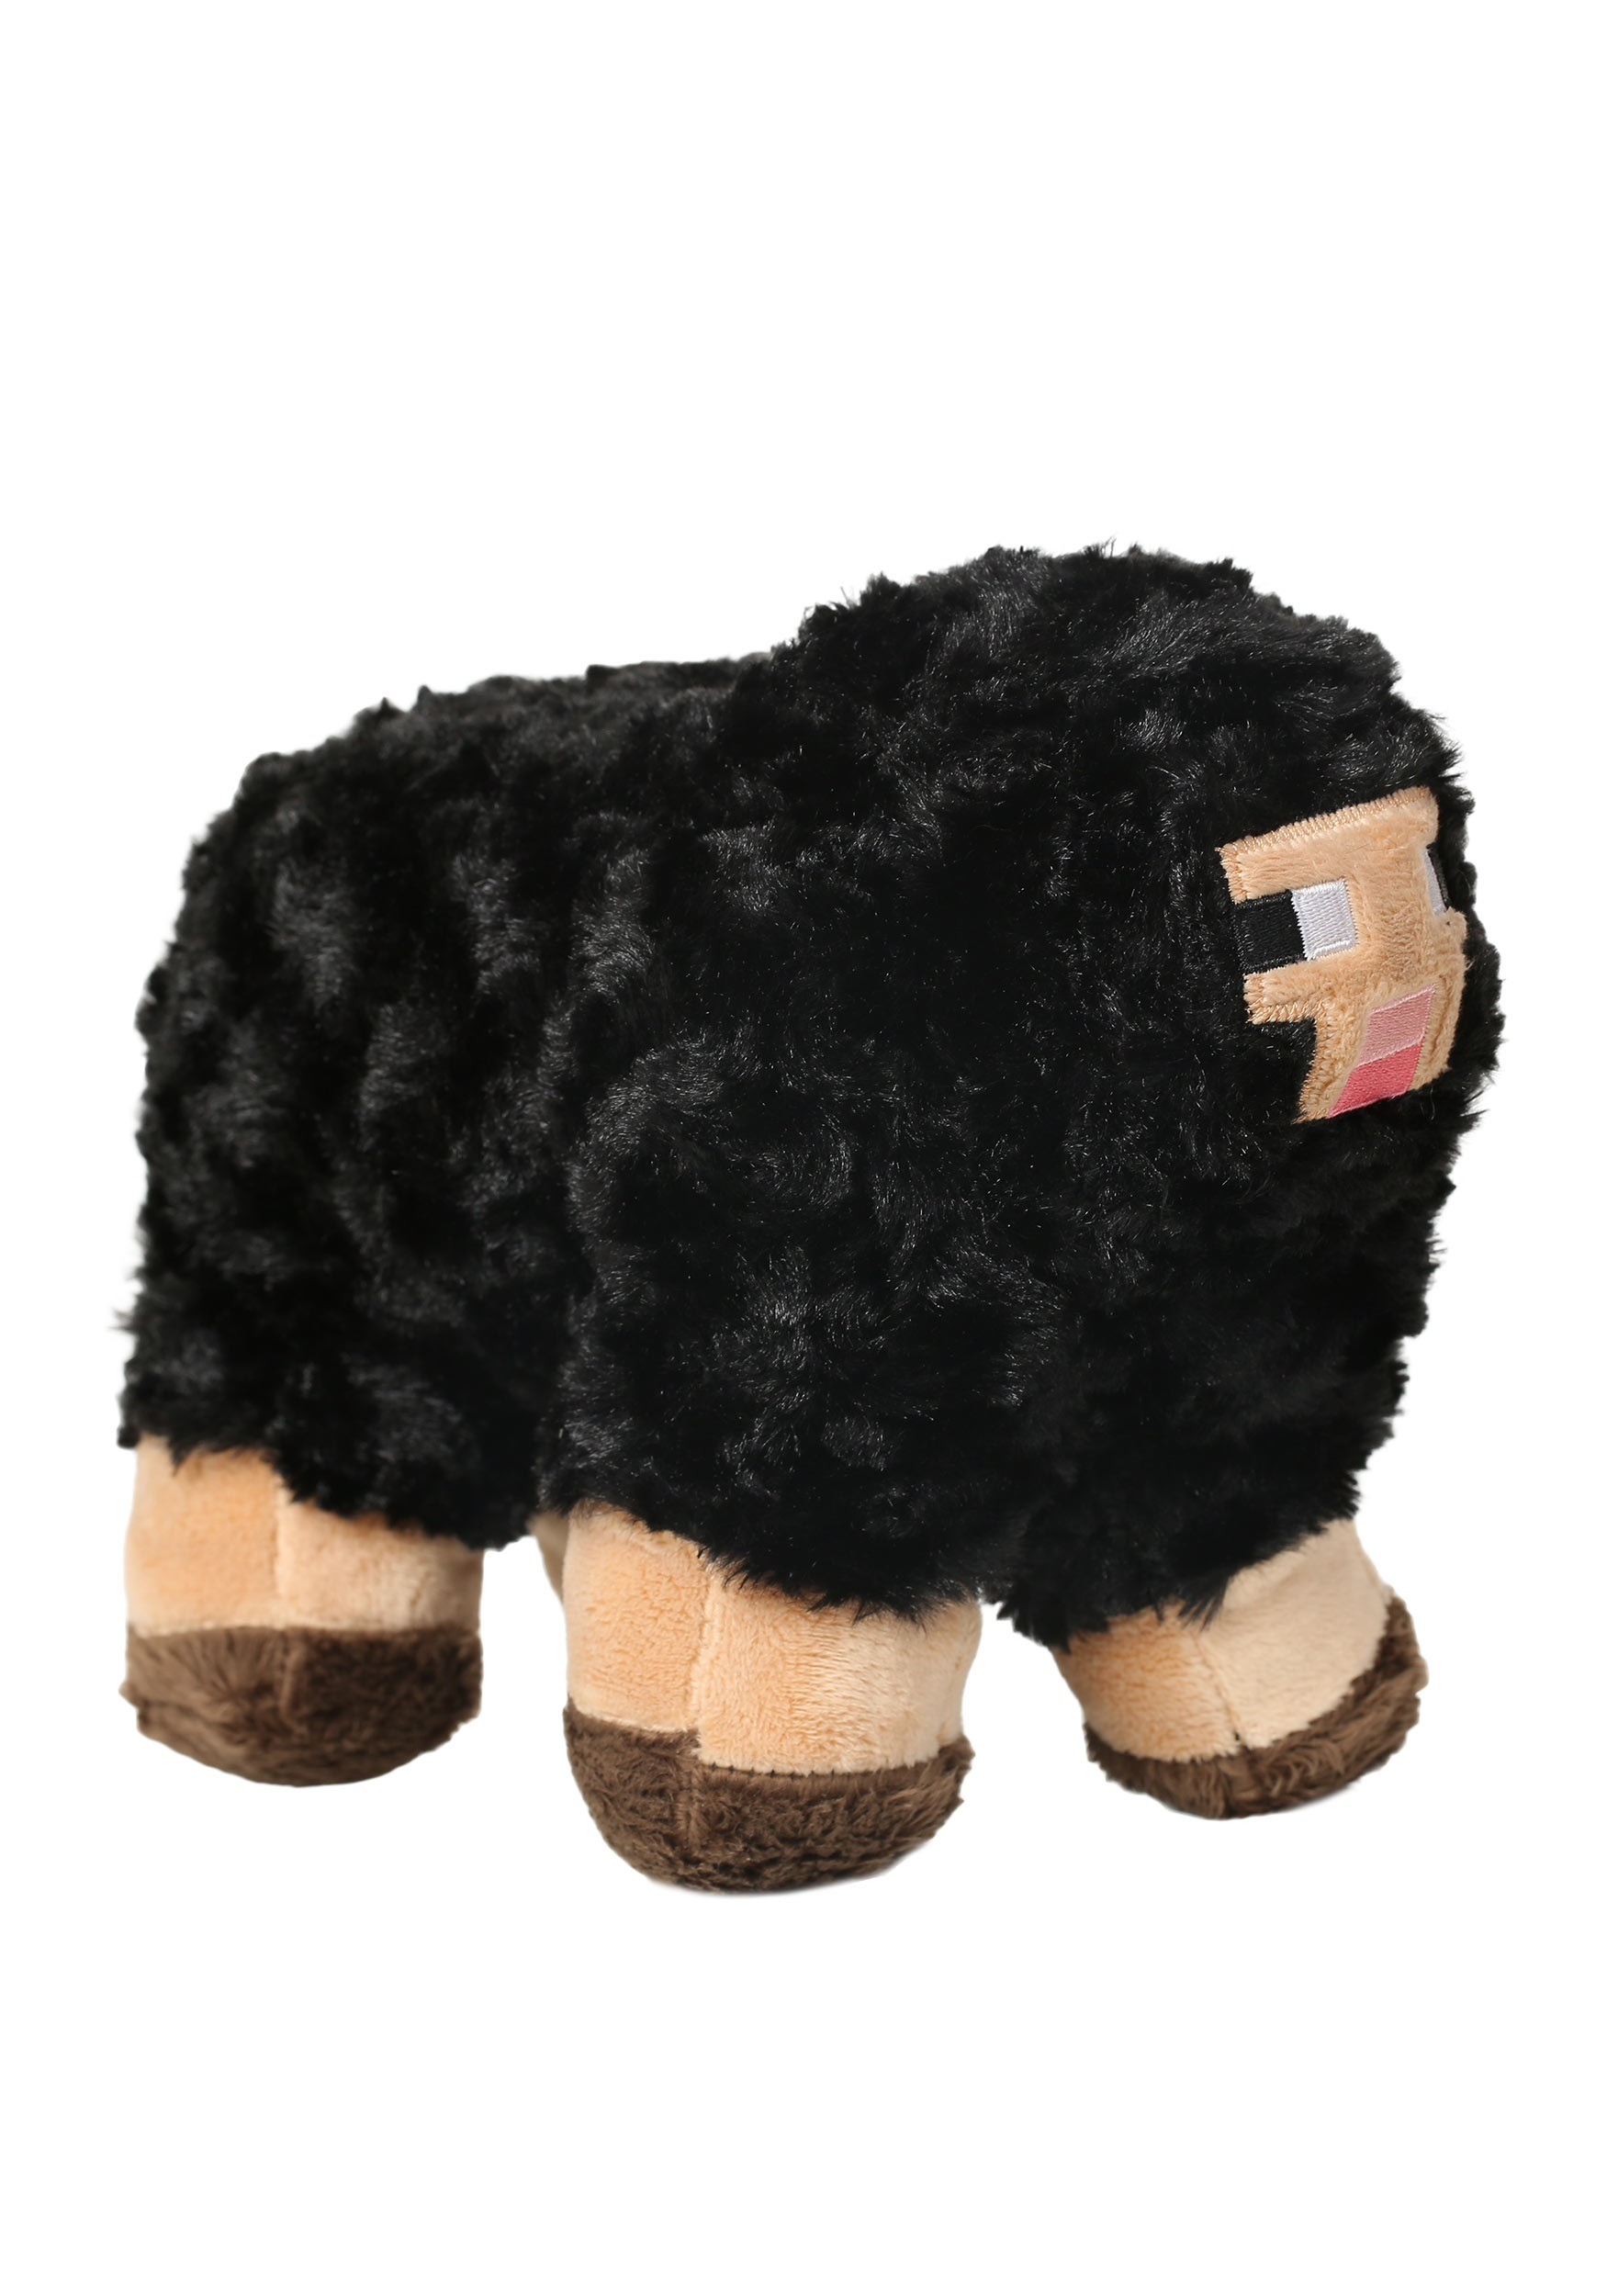 "Minecraft 10"" Sheep Stuffed Figure JIMJMC-05559PL-BKA-NA-JNX"